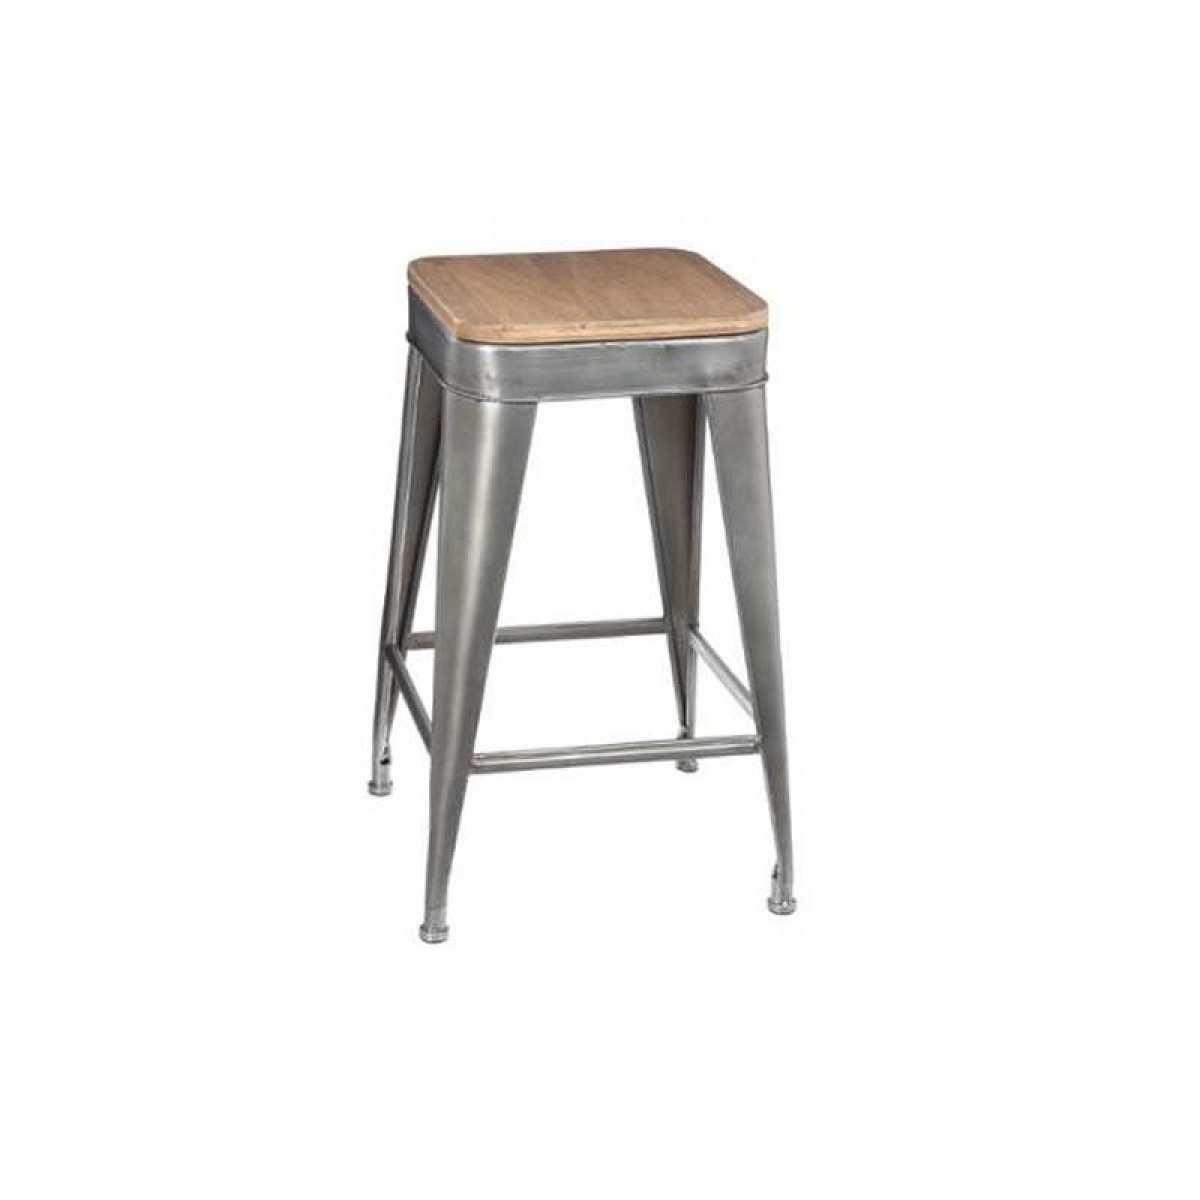 tabouret de bar en m tal joris gris les douces nuits de ma linge de maison. Black Bedroom Furniture Sets. Home Design Ideas